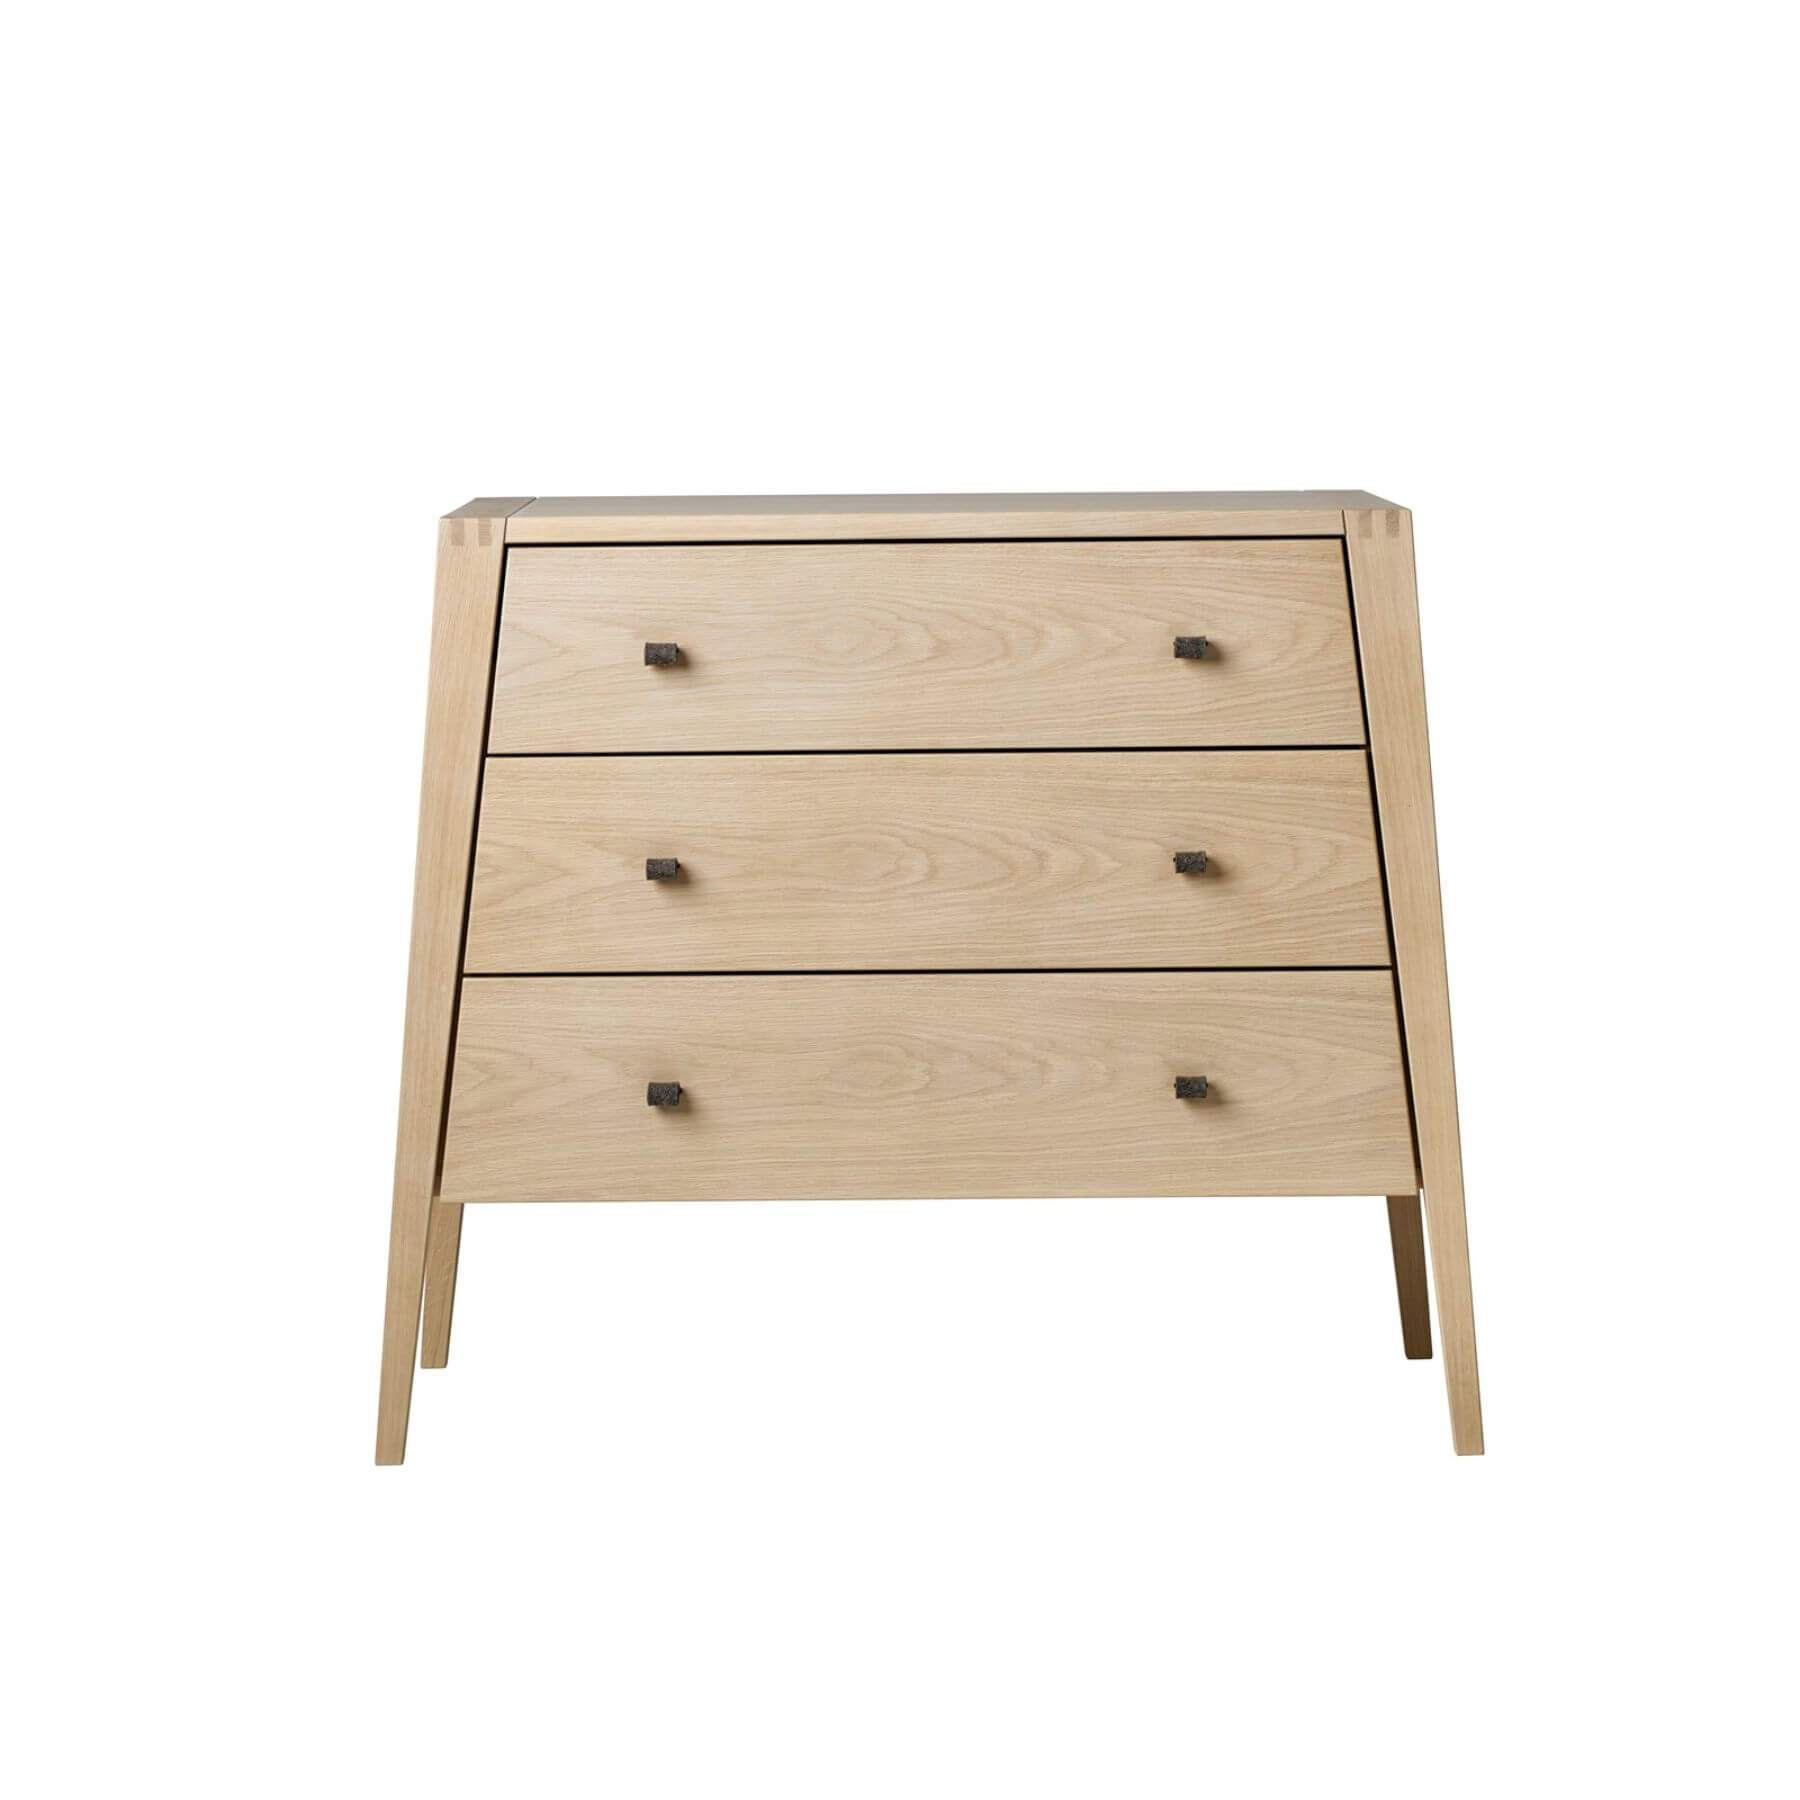 Leander Linea 3 Drawer Dresser - Oak